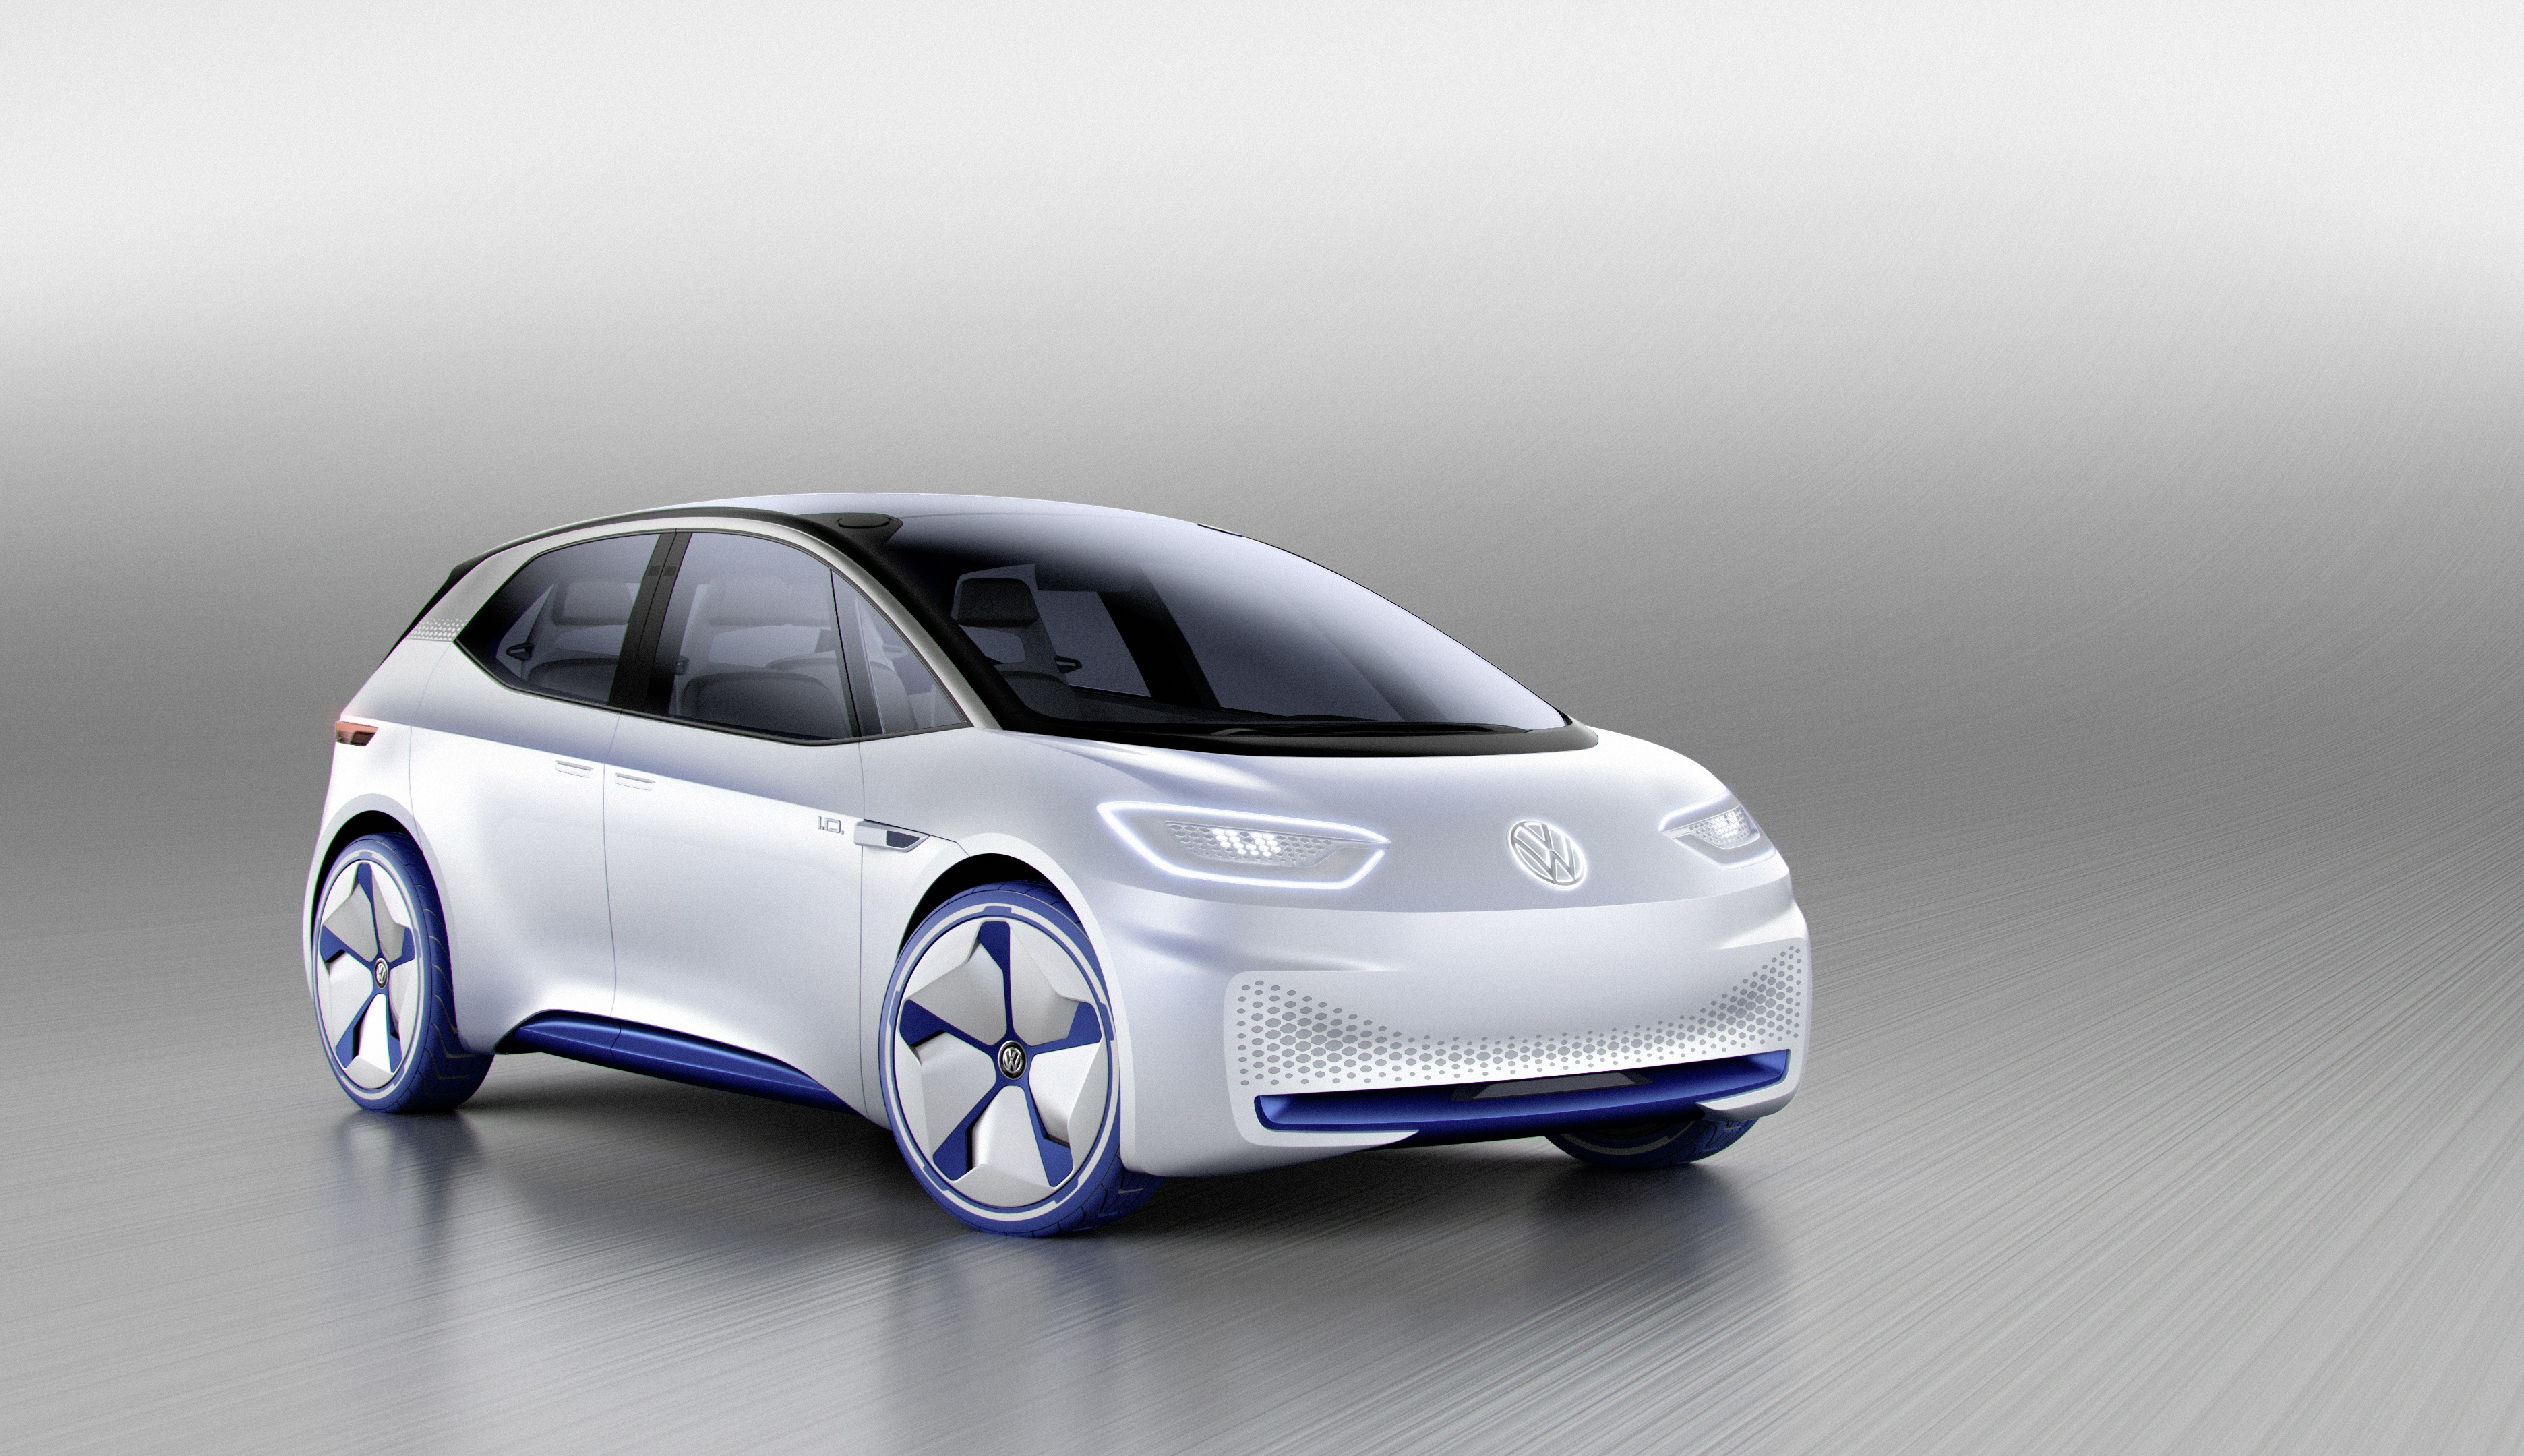 This is Volkswagen's electric auto for 2020